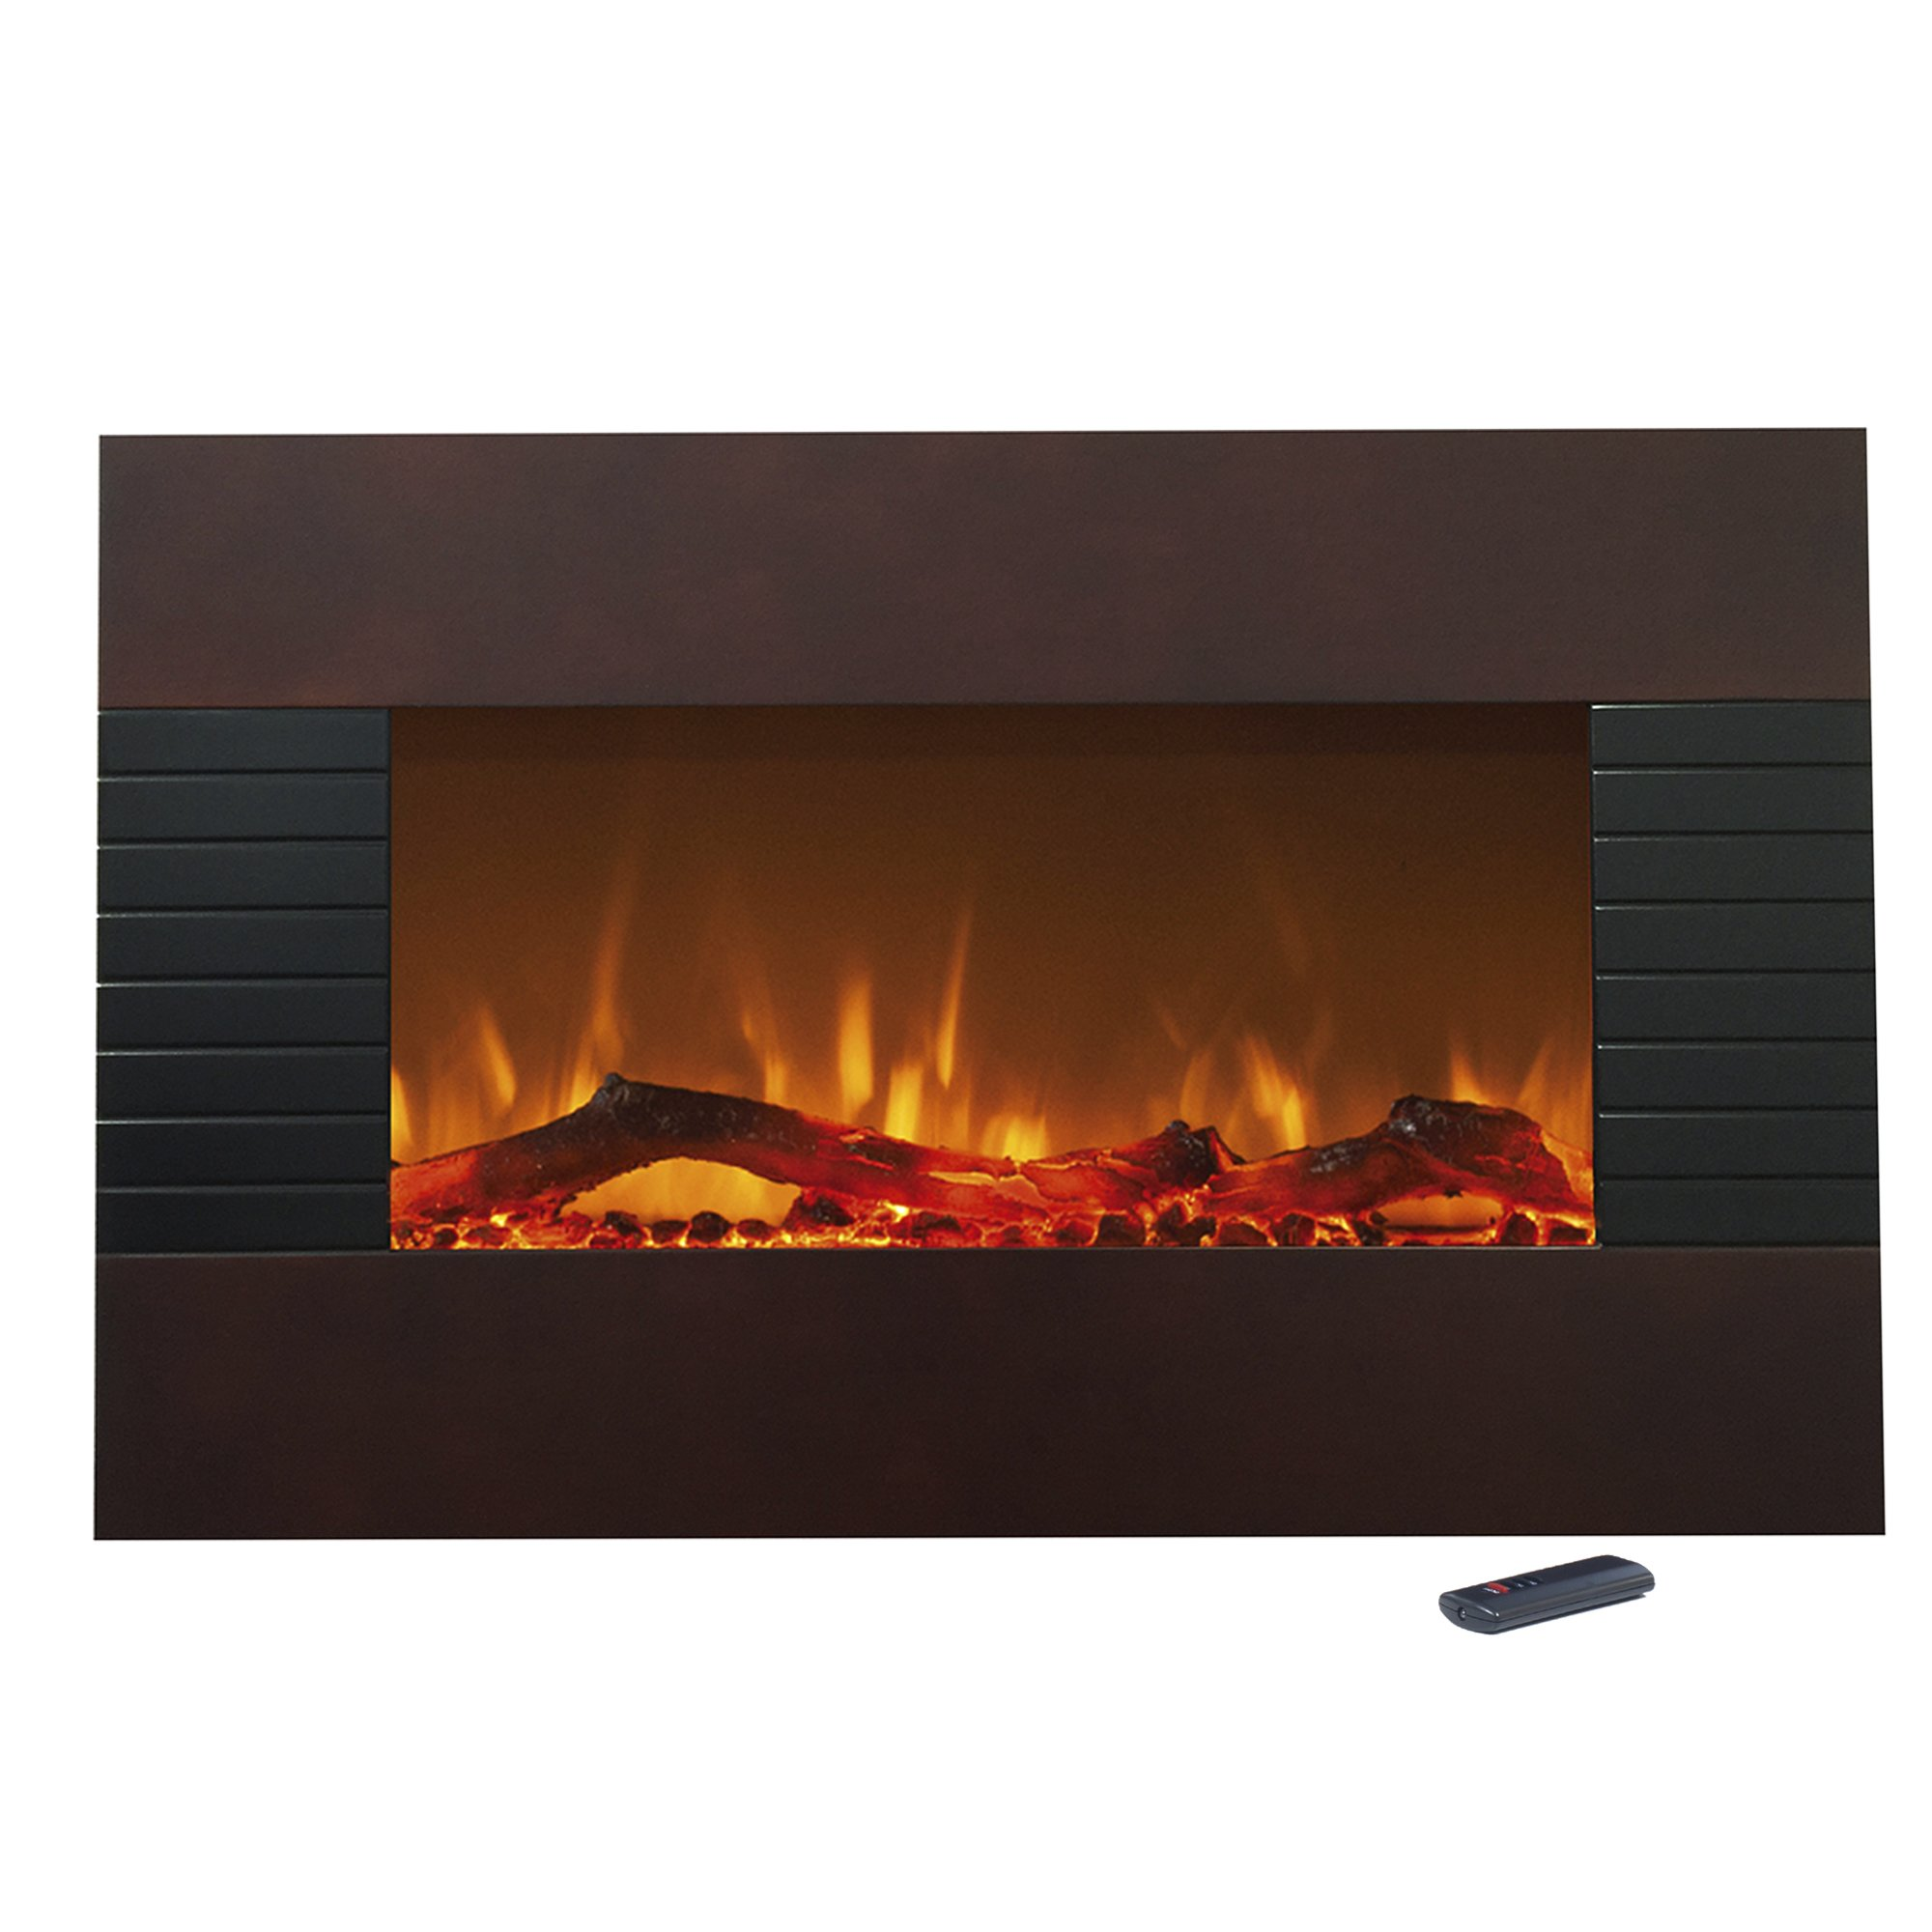 Northwest 80-422S Mahogany Fireplace With Wall Mount & Floor Stand, 36'' by Northwest (Image #2)